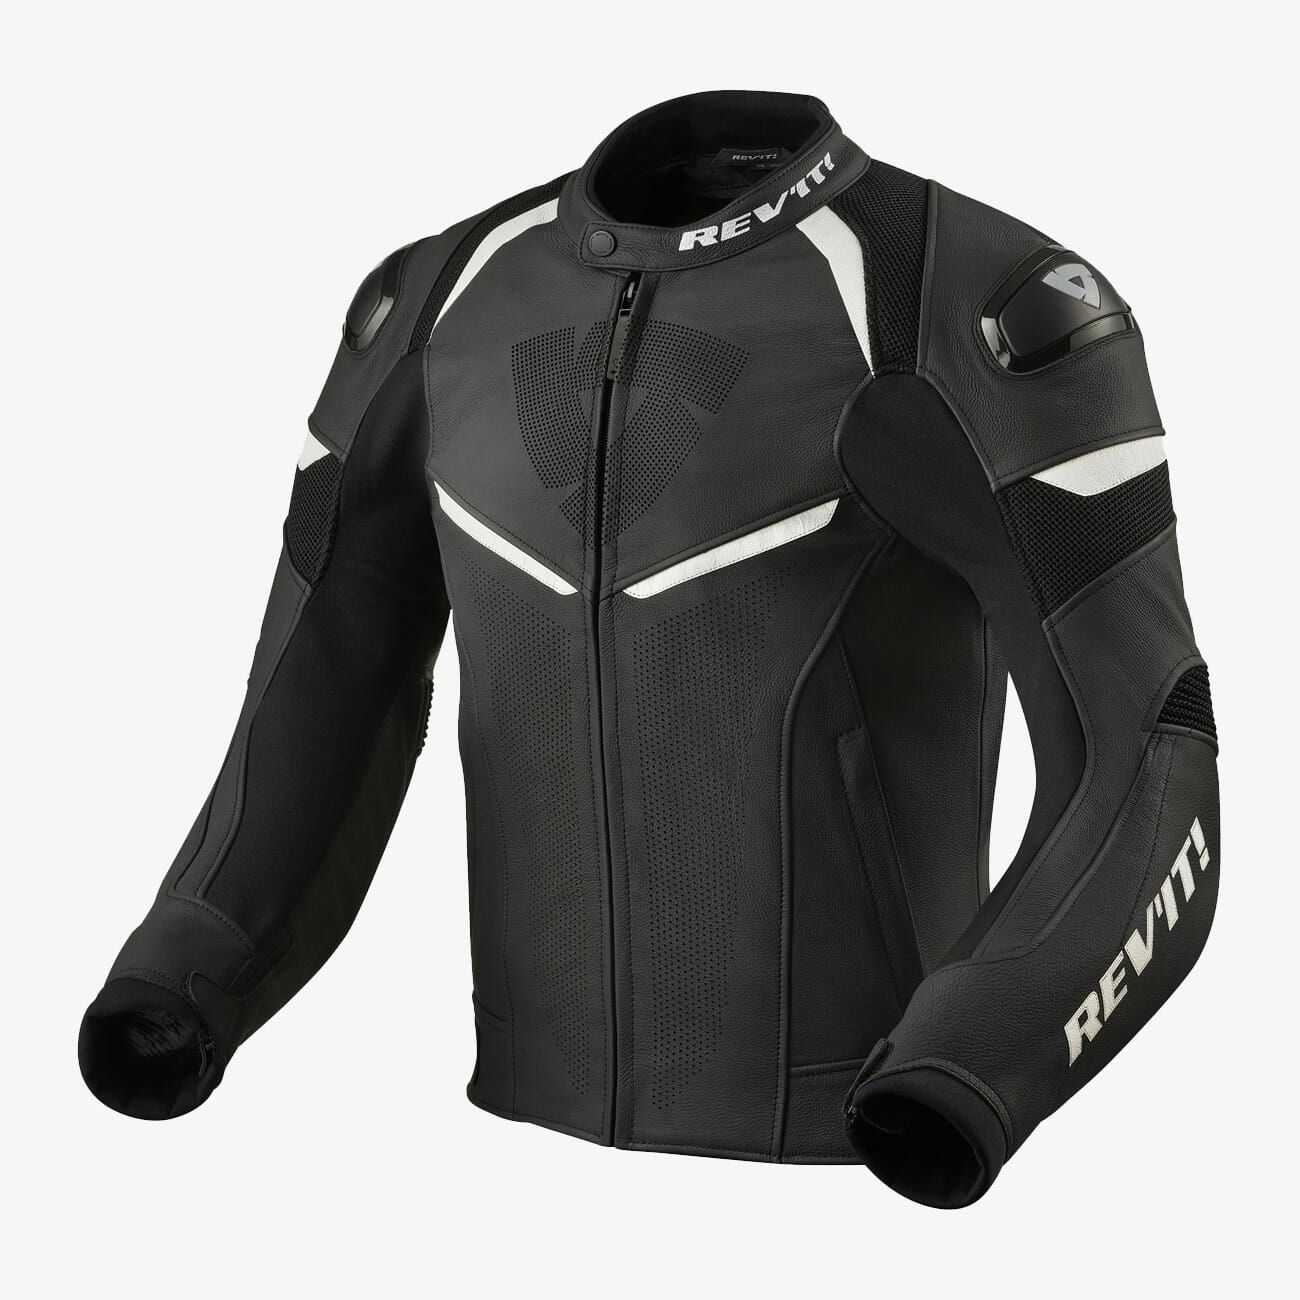 Motorcycle Jackets Made for Summer Riding • Gear Patrol